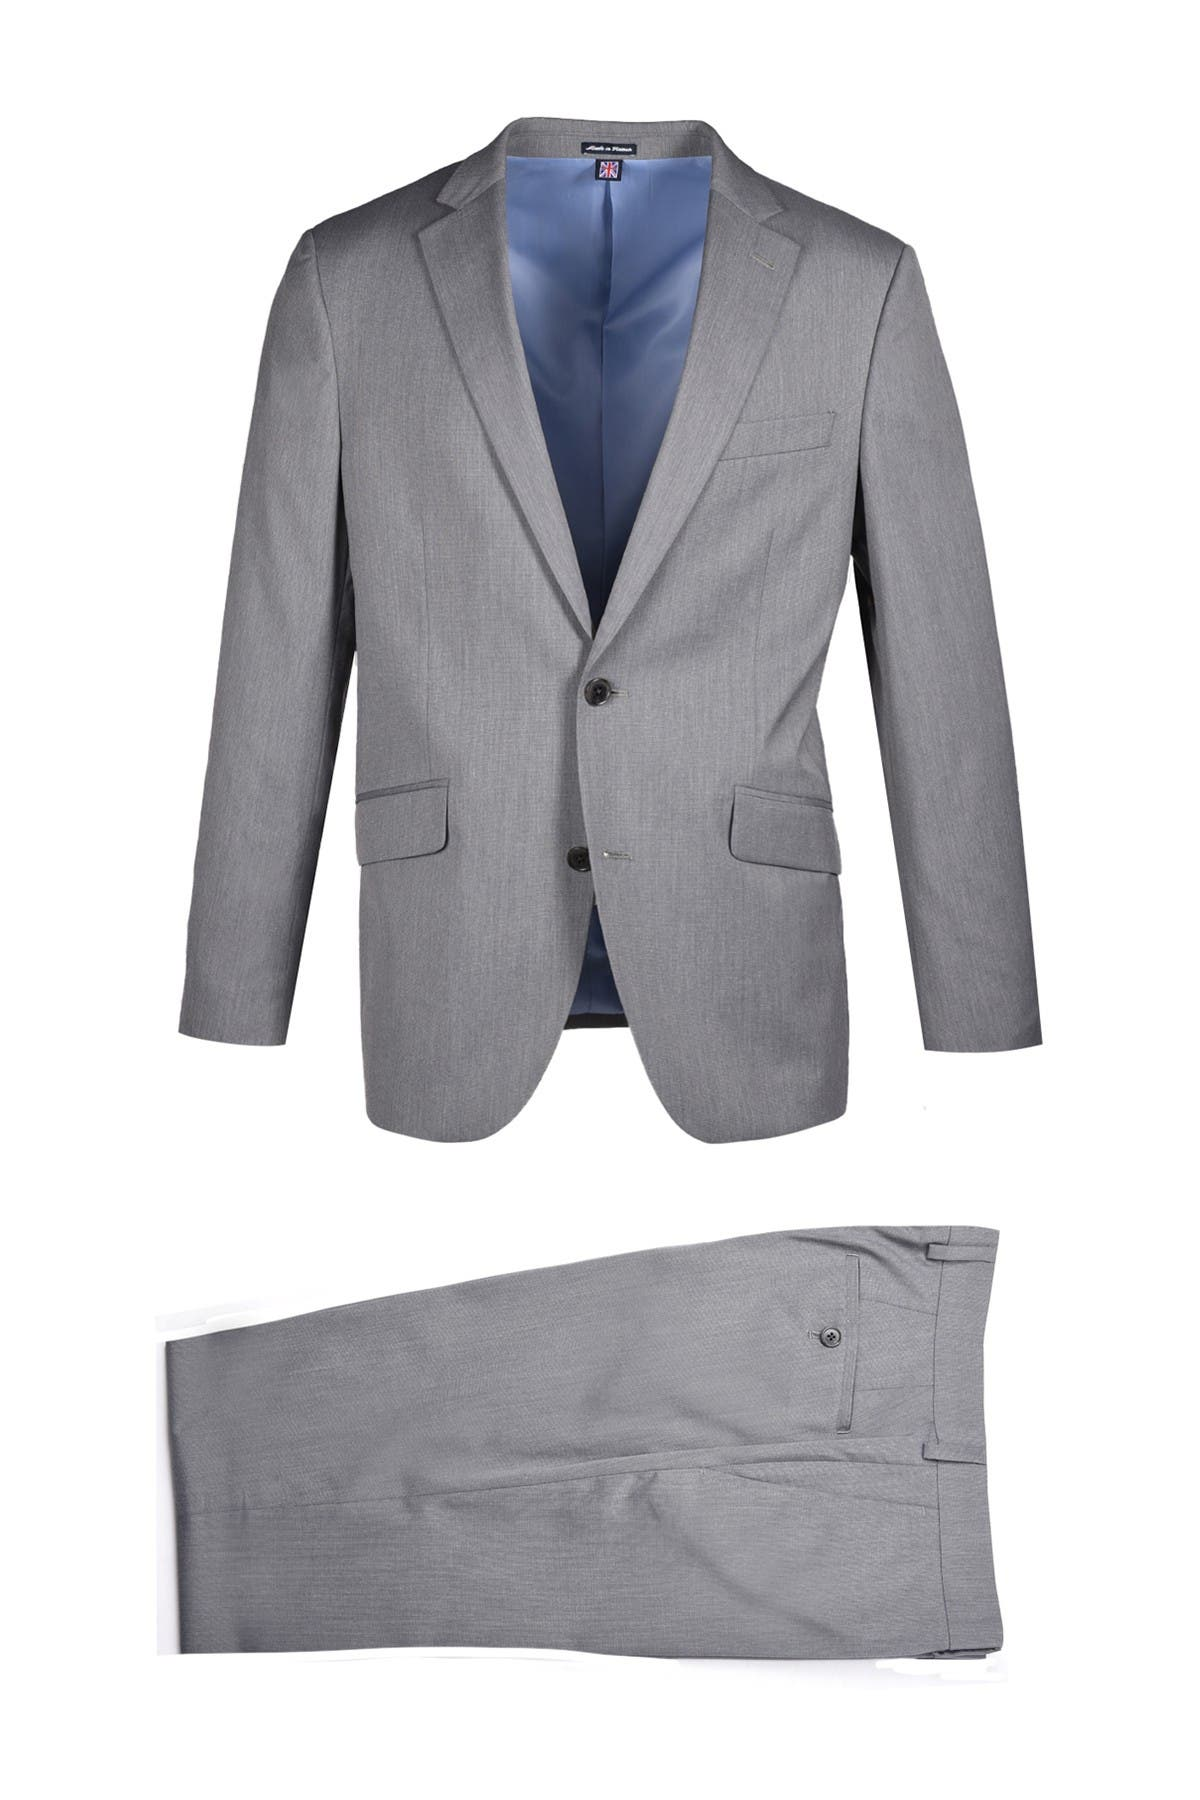 Image of SAVILE ROW CO Mid Grey Notch Lapel Slim Fit Stretch Fabric Suit